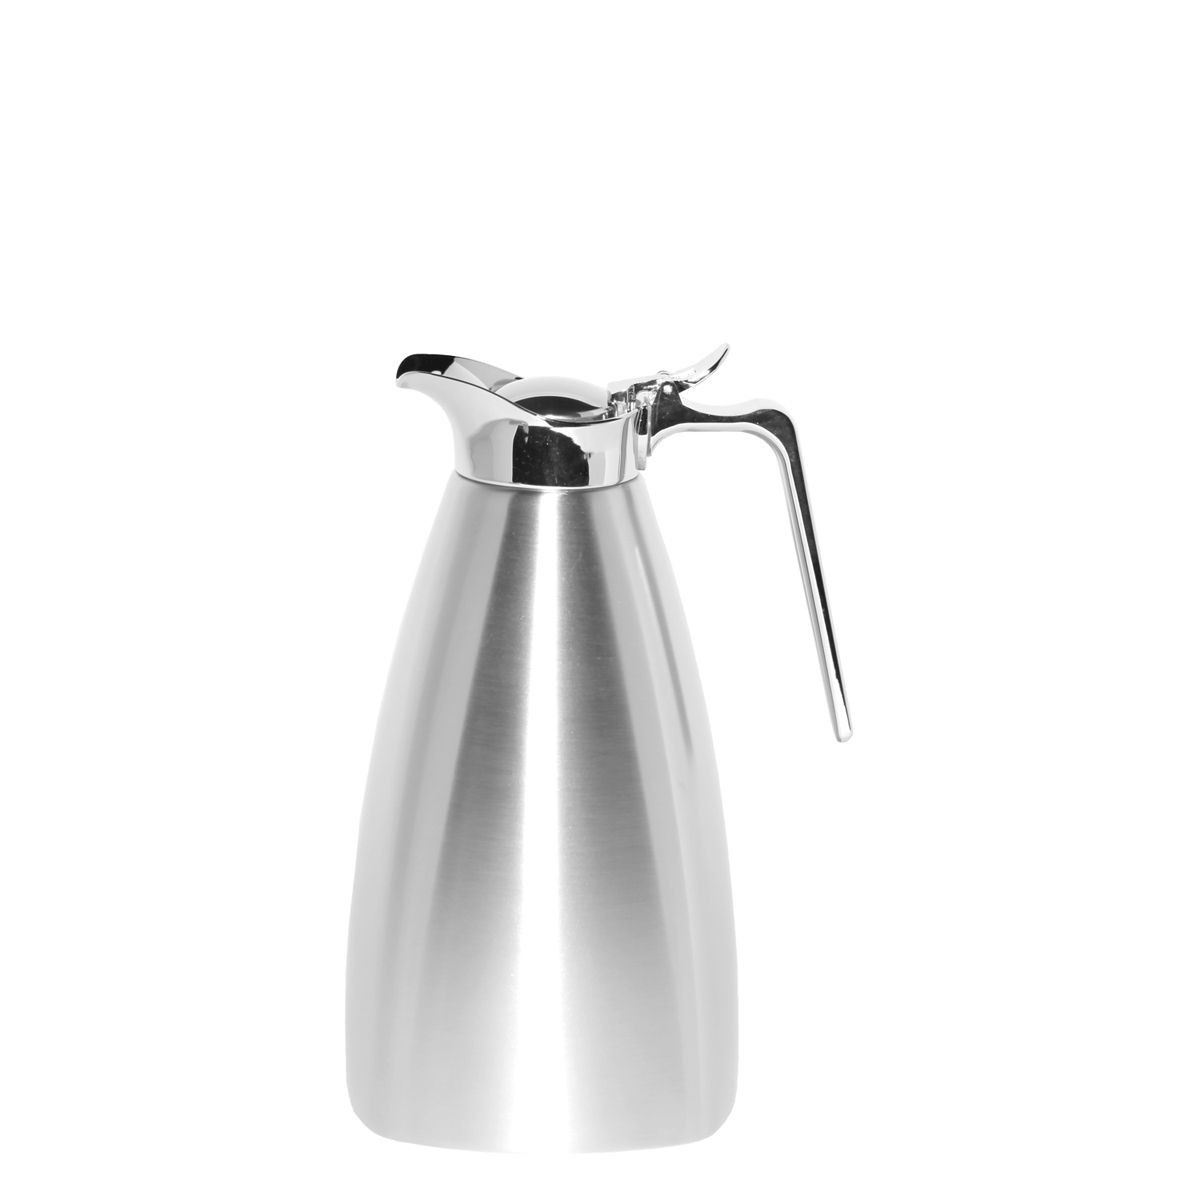 Service Ideas SVSQ15BS Brushed Steel Square Carafe, 1.5 Liter